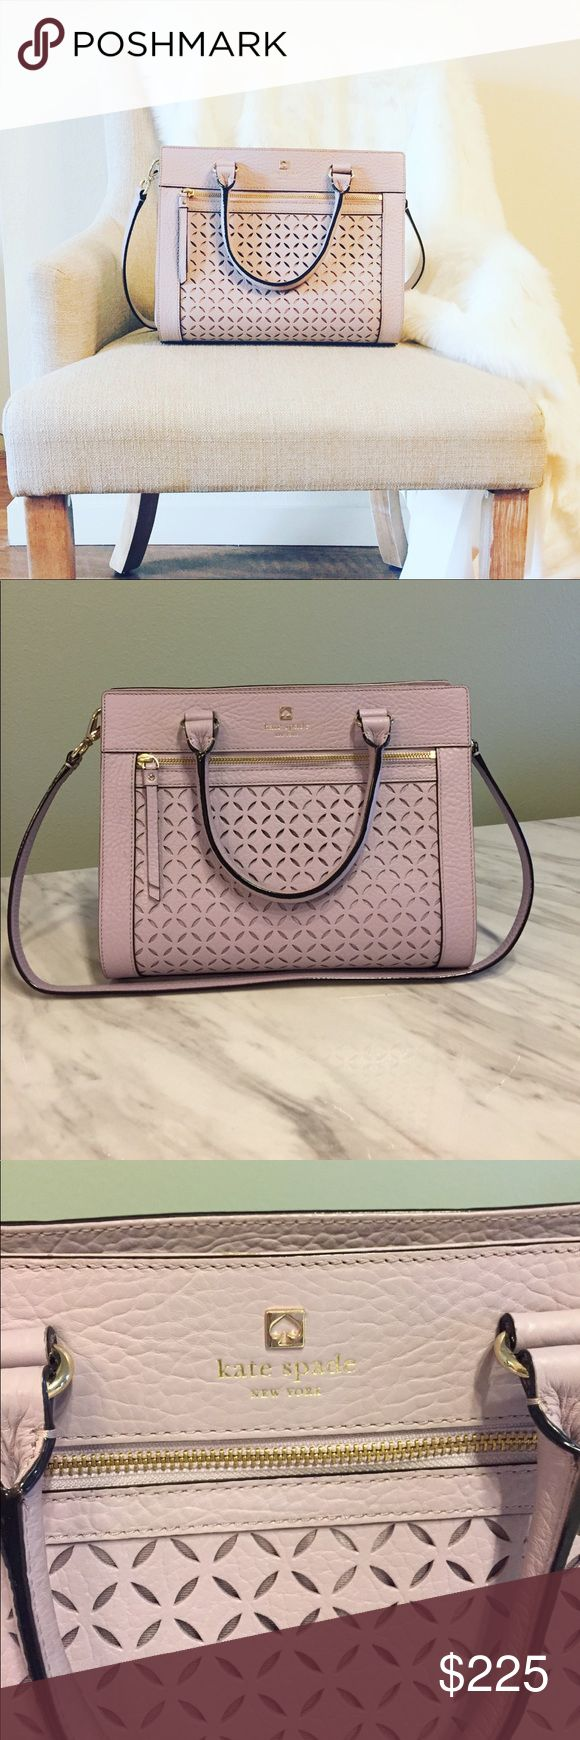 """Lavender Kate Spade Purse Lavender Kate Spade Purse, purchased at outlets so no dust bag. Only carried a few times. 9 3/4"""" tall and 12"""" wide. Does have shoulder strap and handles. No stains on interior. Smoke free home. kate spade Bags Shoulder Bags"""